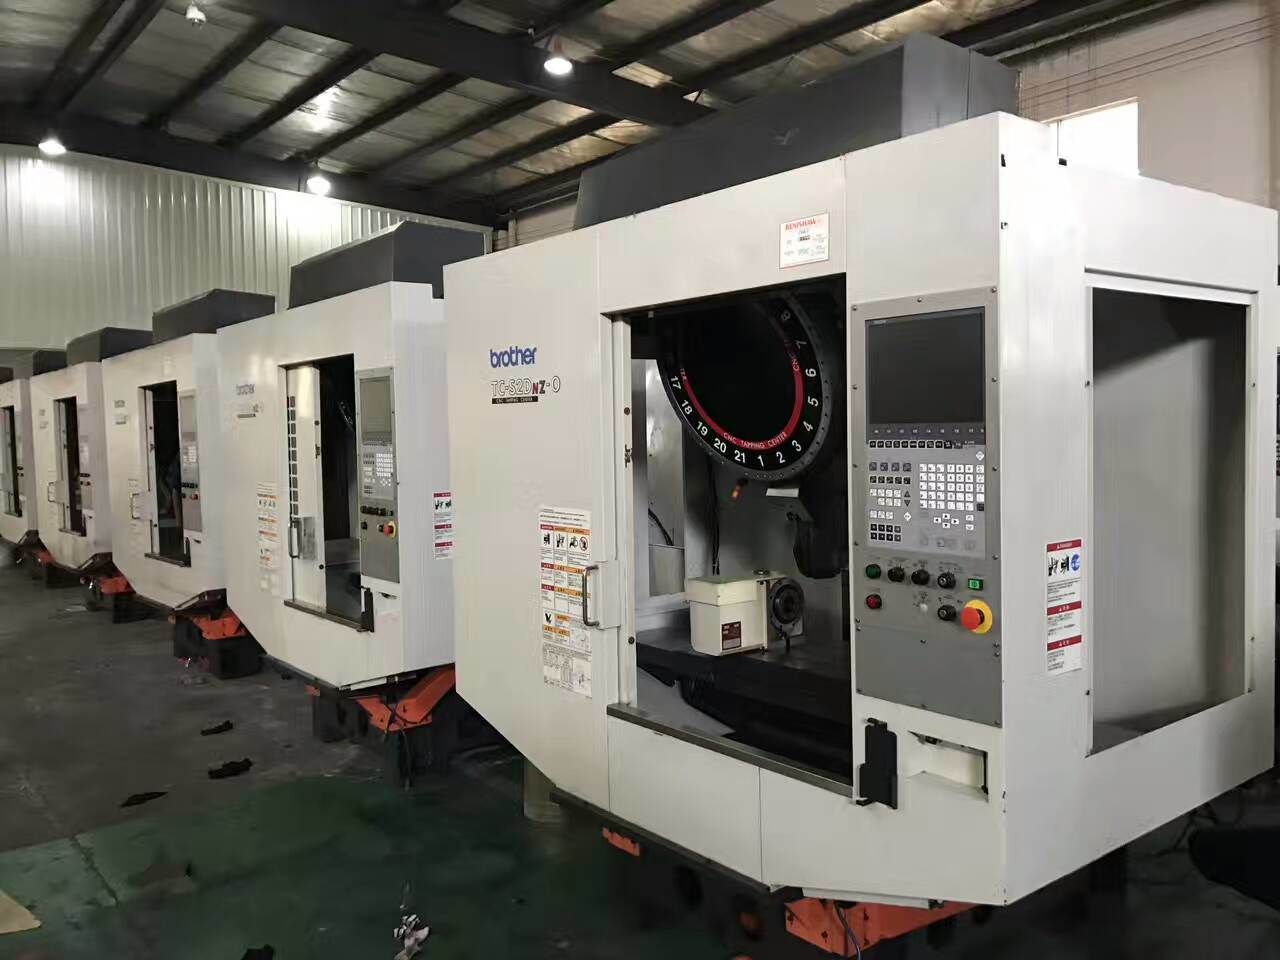 Japanese Made Used Second Hand Small Vetical Milling Machine (brother)